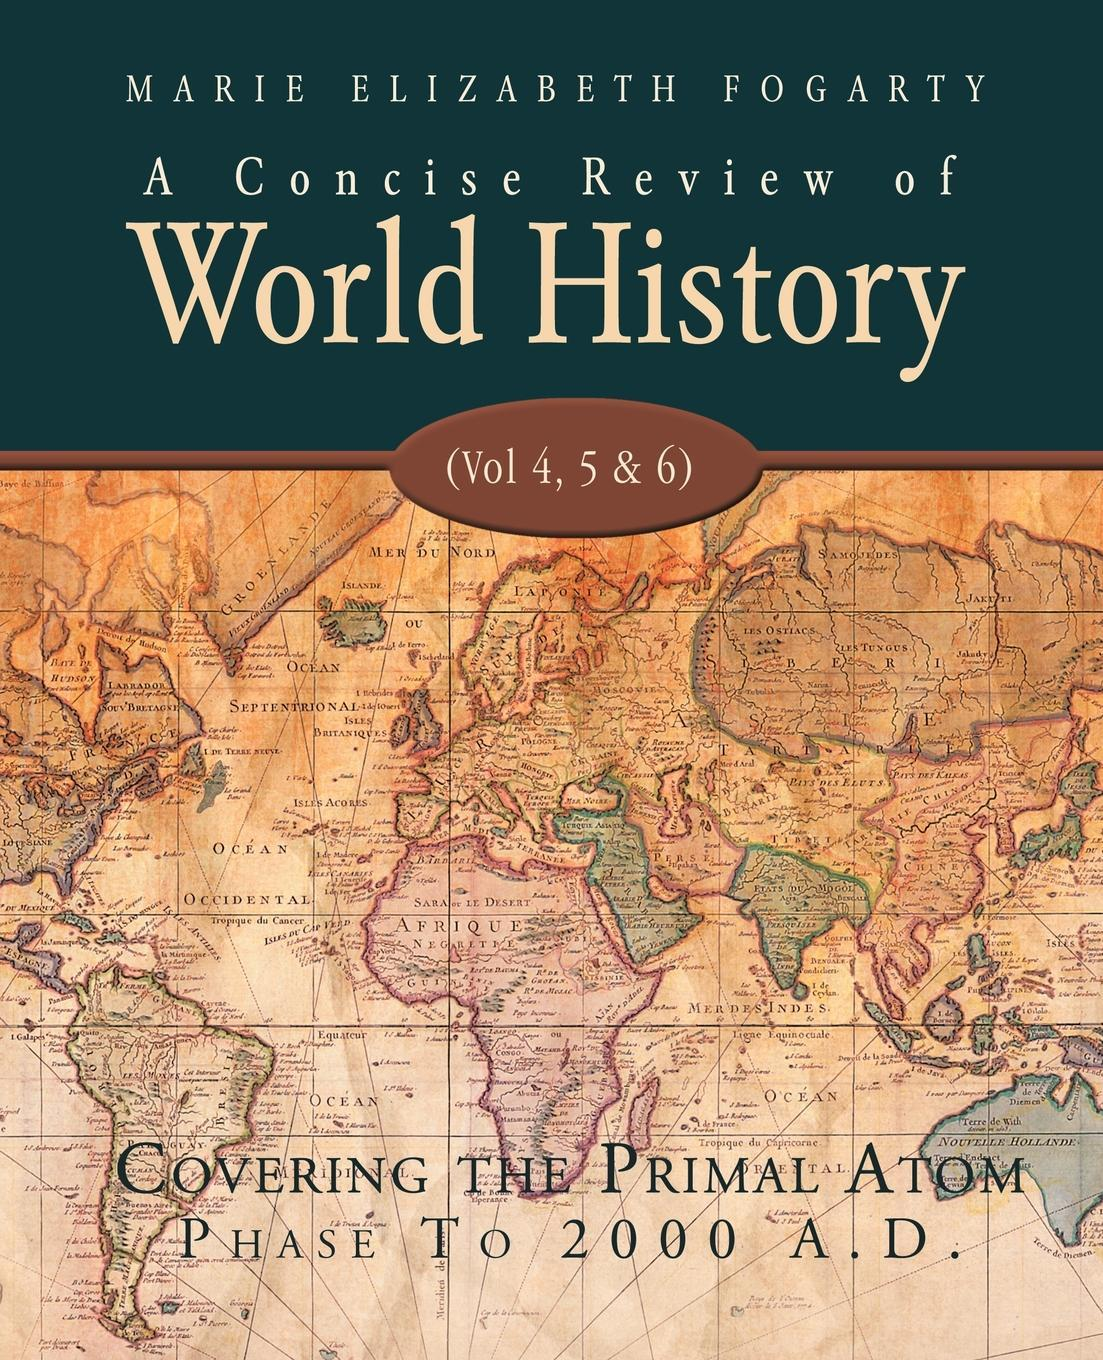 A Concise Review of World History (Vol 4, 5 & 6): Covering the Primal Atom Phase To 2000 A.D. EB9781425127602